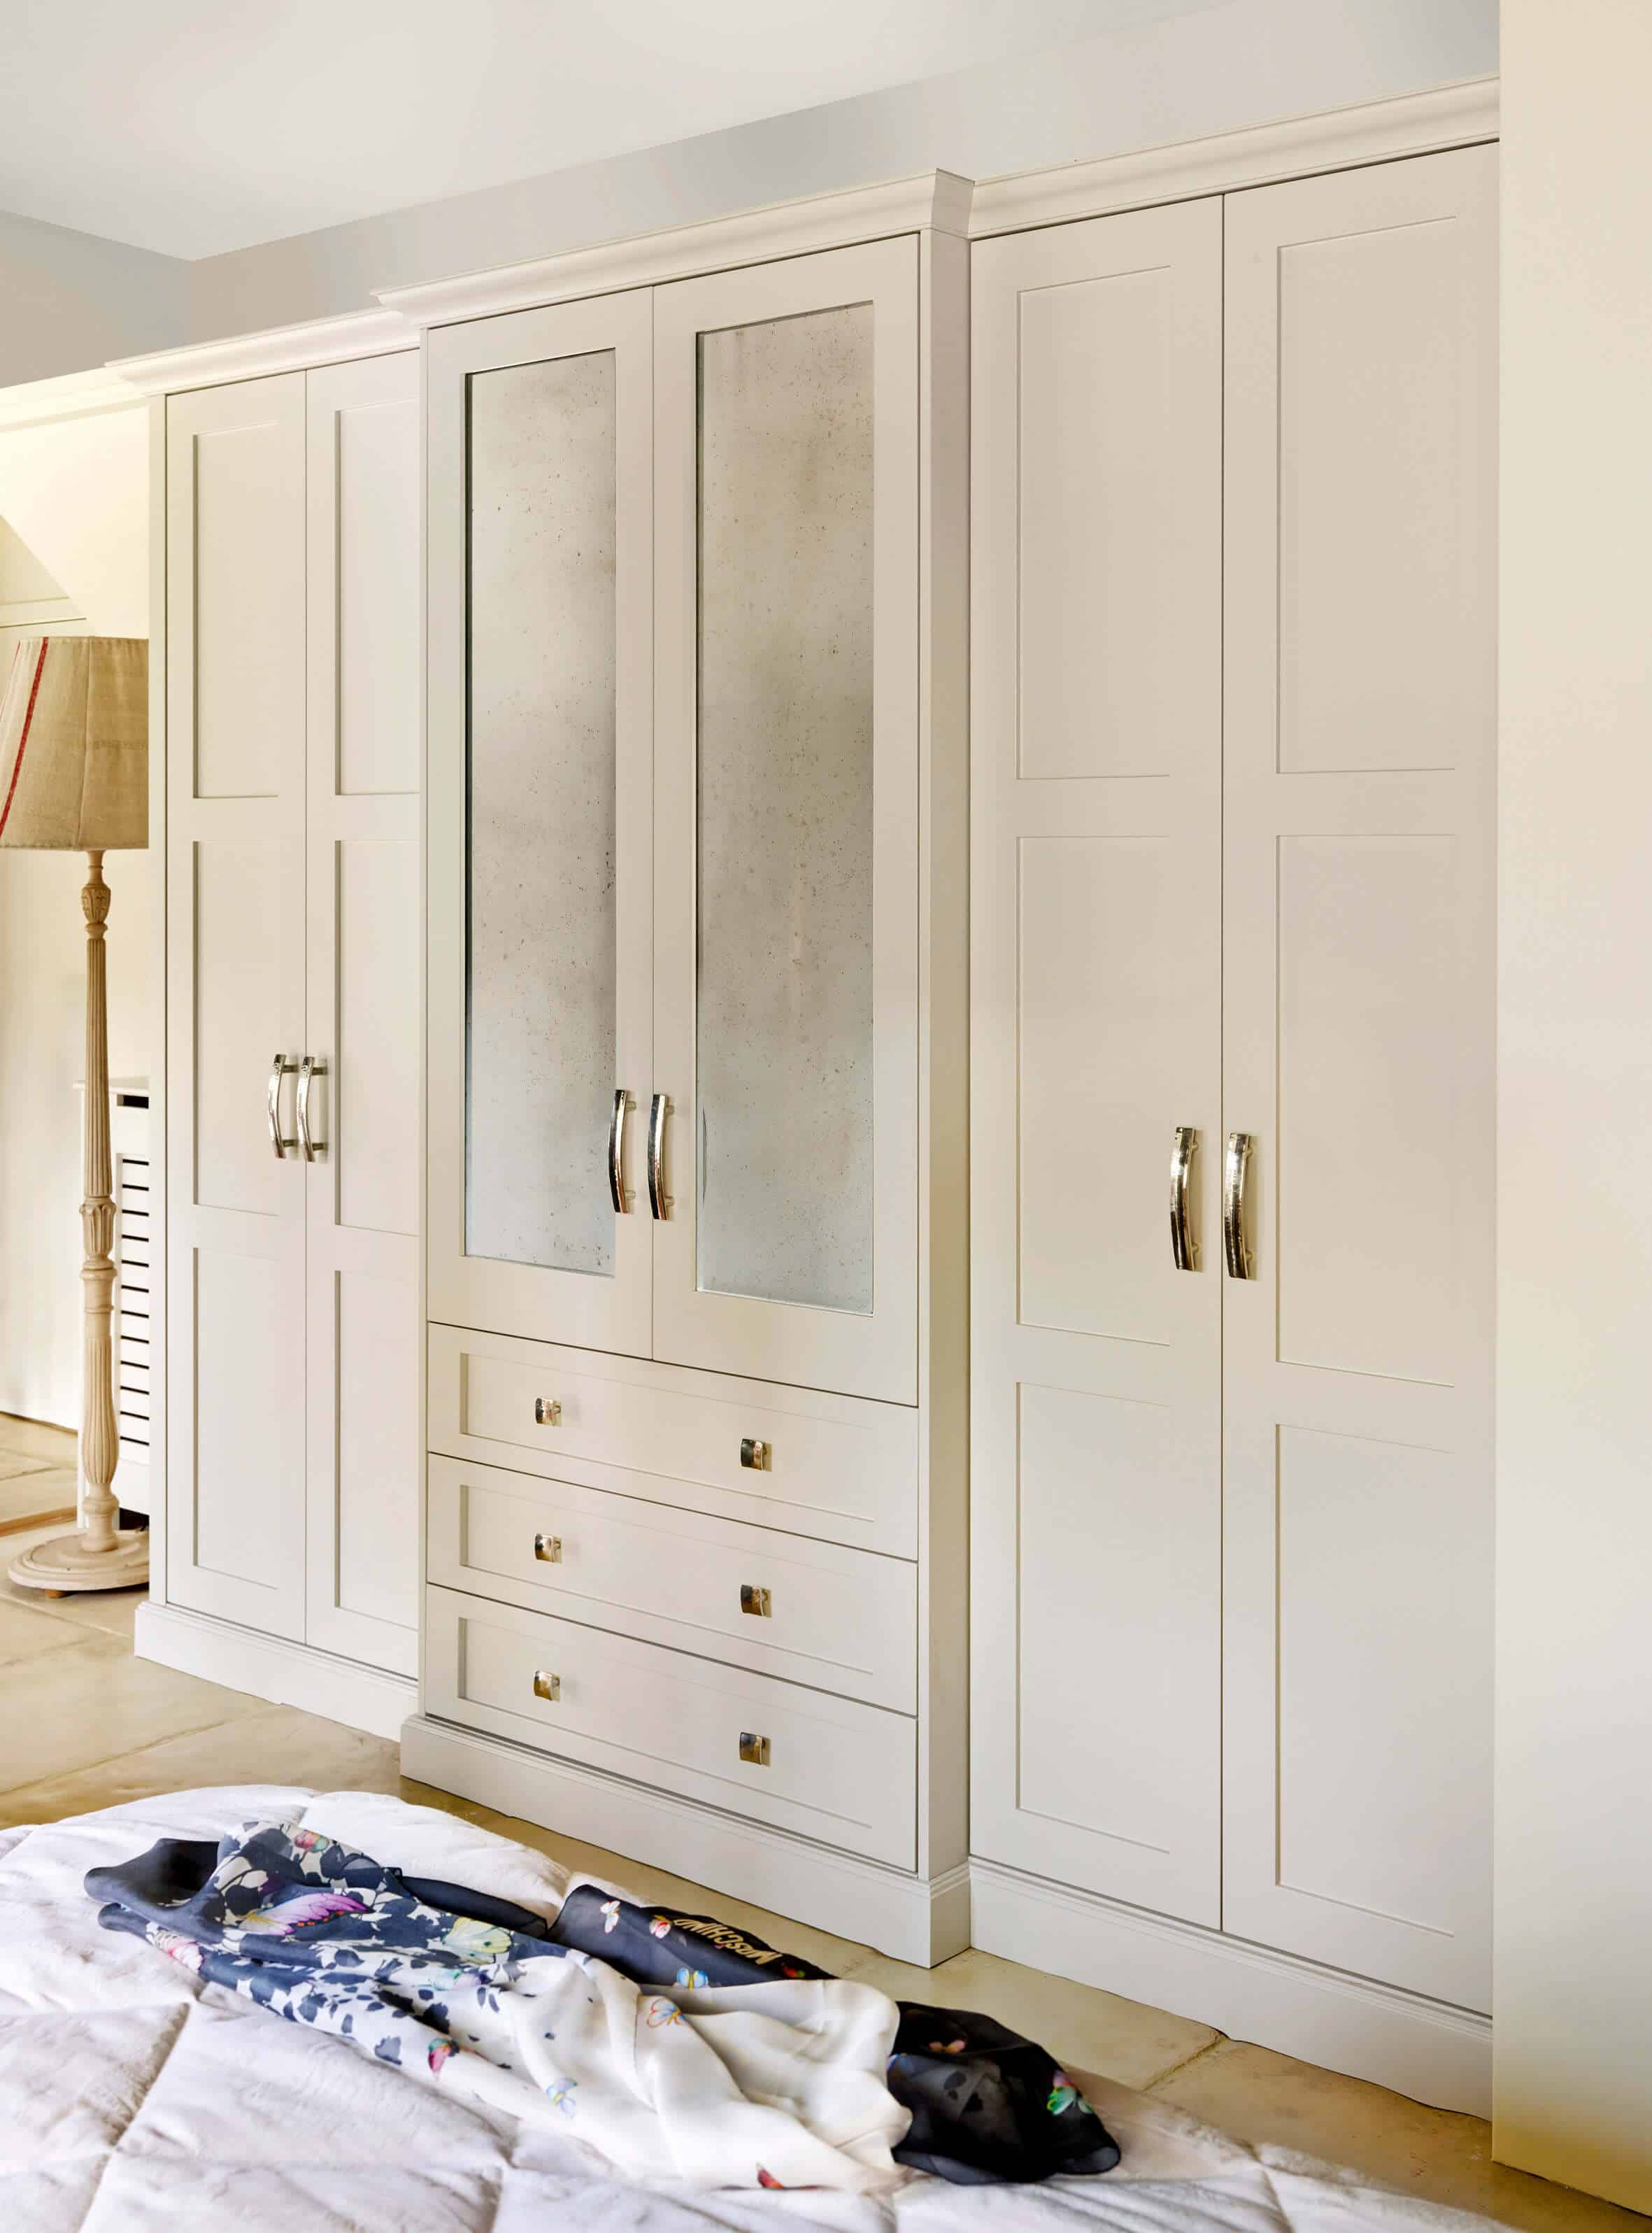 Shaker style wardrobe by John Lewis of Hungerford